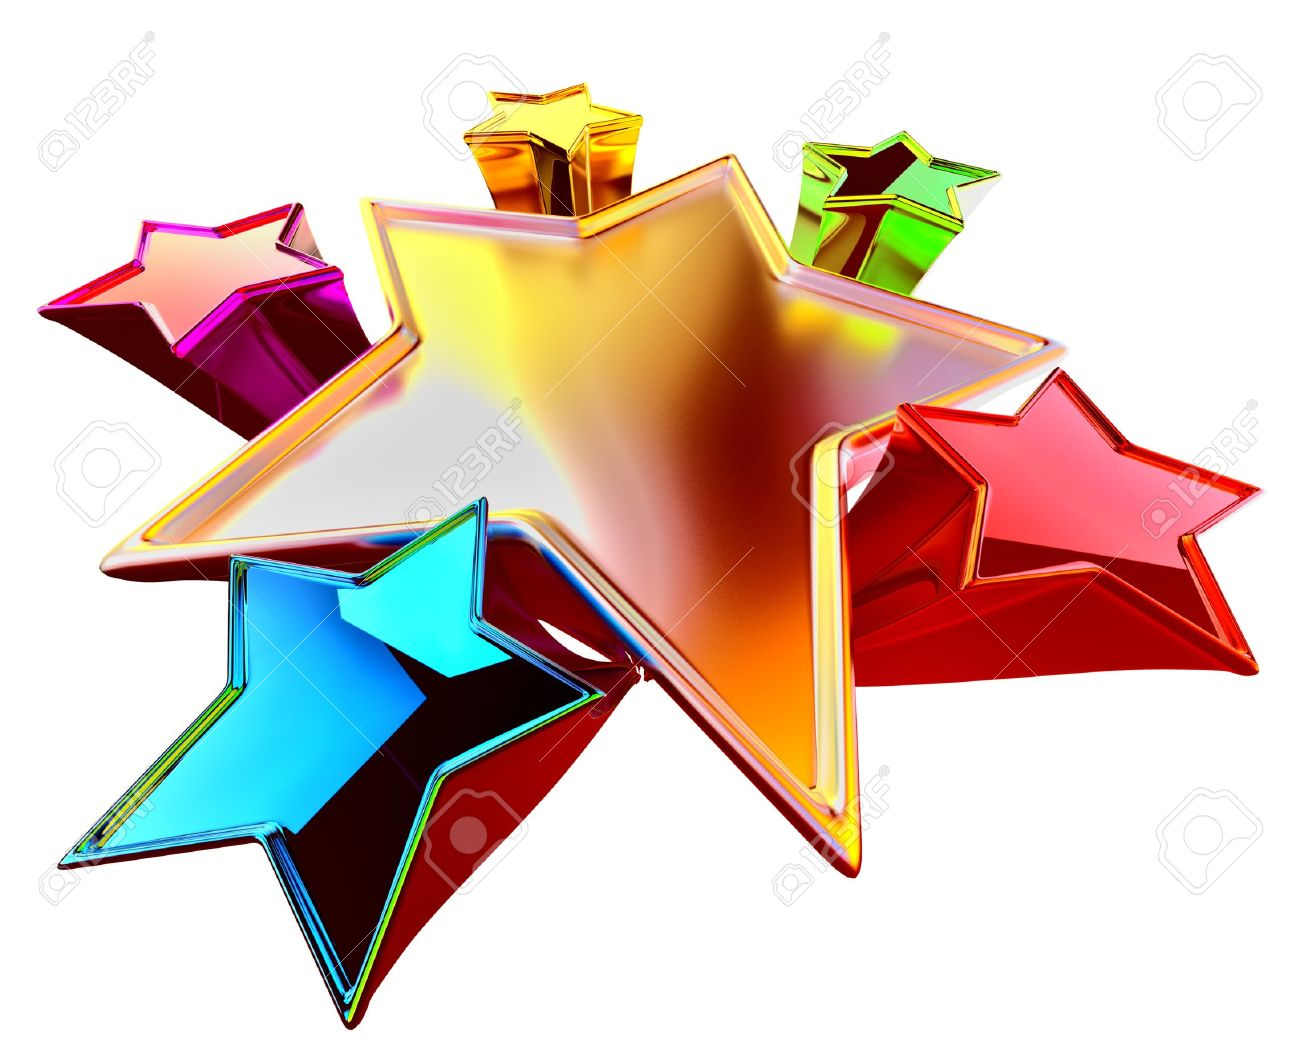 a colorful shining stars in the motion with stylistic distortion of dimensions Stock Photo - 13850180